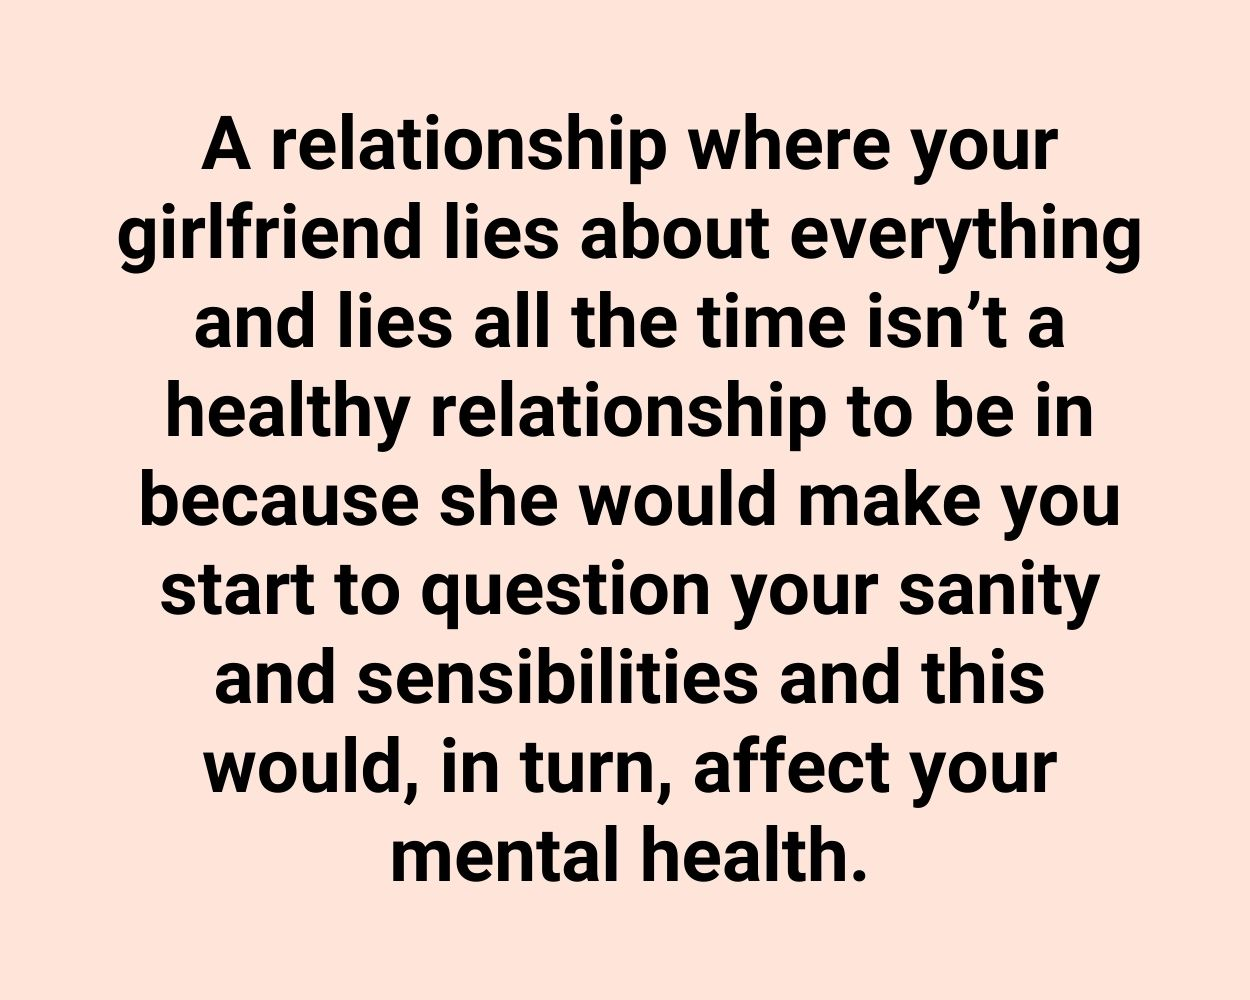 To girlfriend a what with do lying Adolescent Lying: